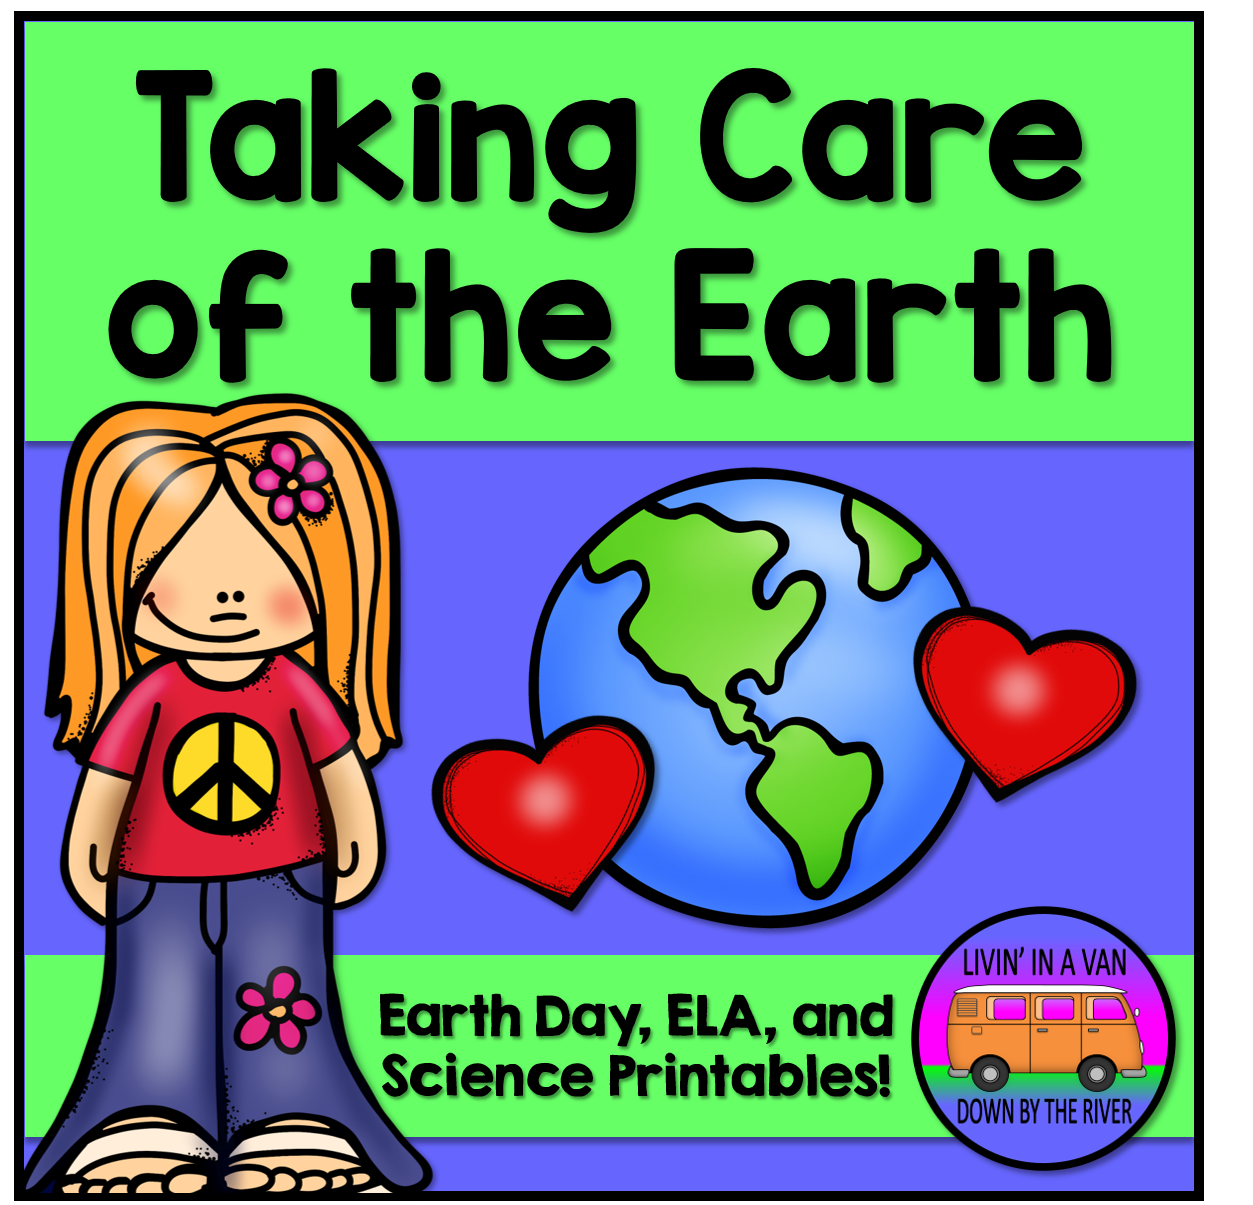 Earth day freebies 2018 chicago